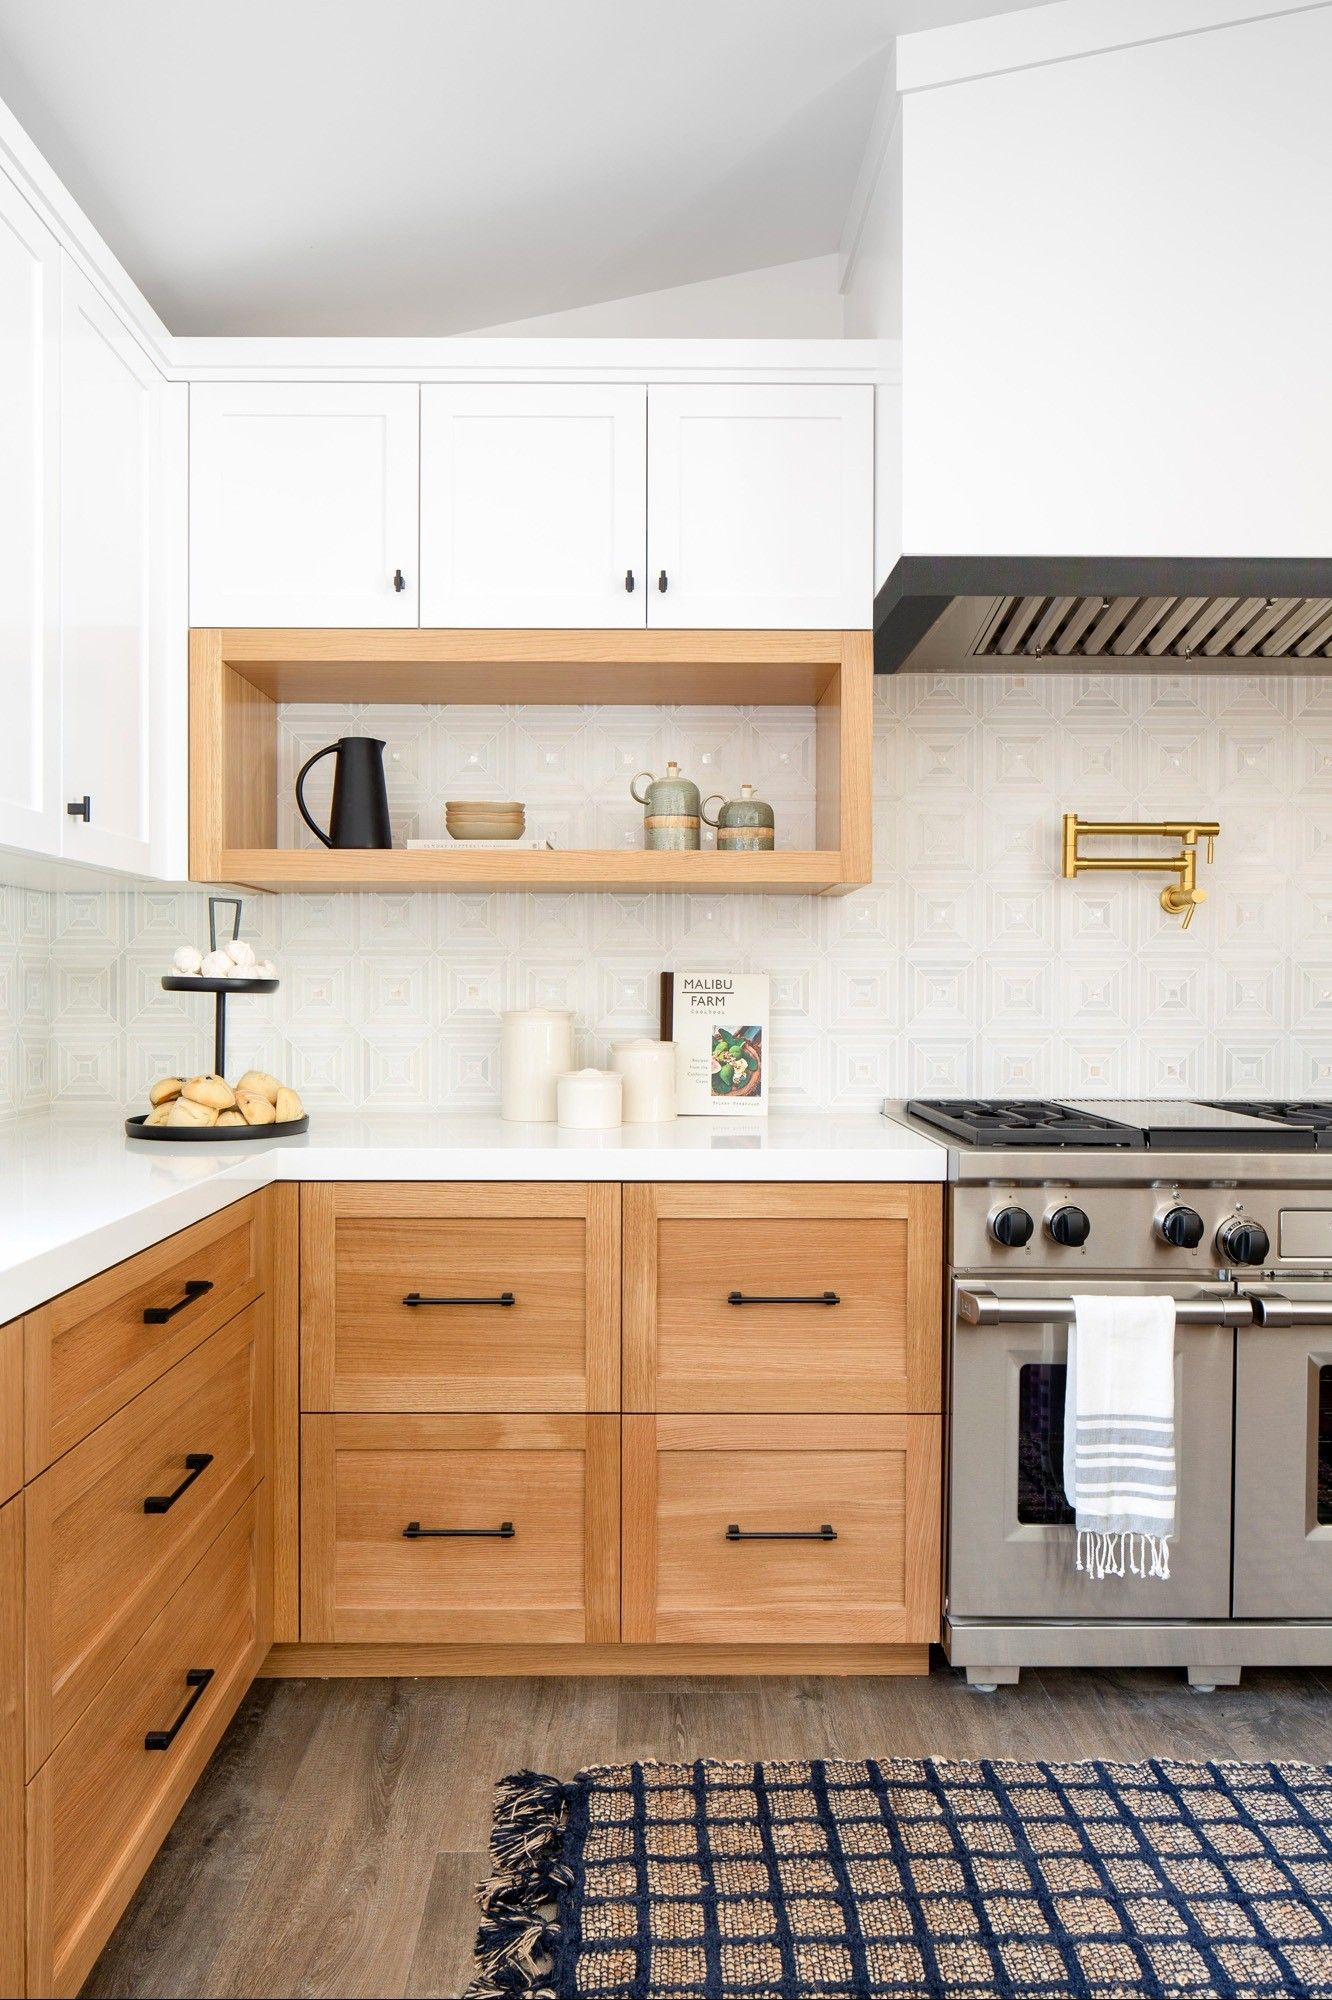 Pin by Heather Nguyen on Home 202 in 2020   Maple kitchen ... on Maple Kitchen Cabinets With Black Countertops  id=70924